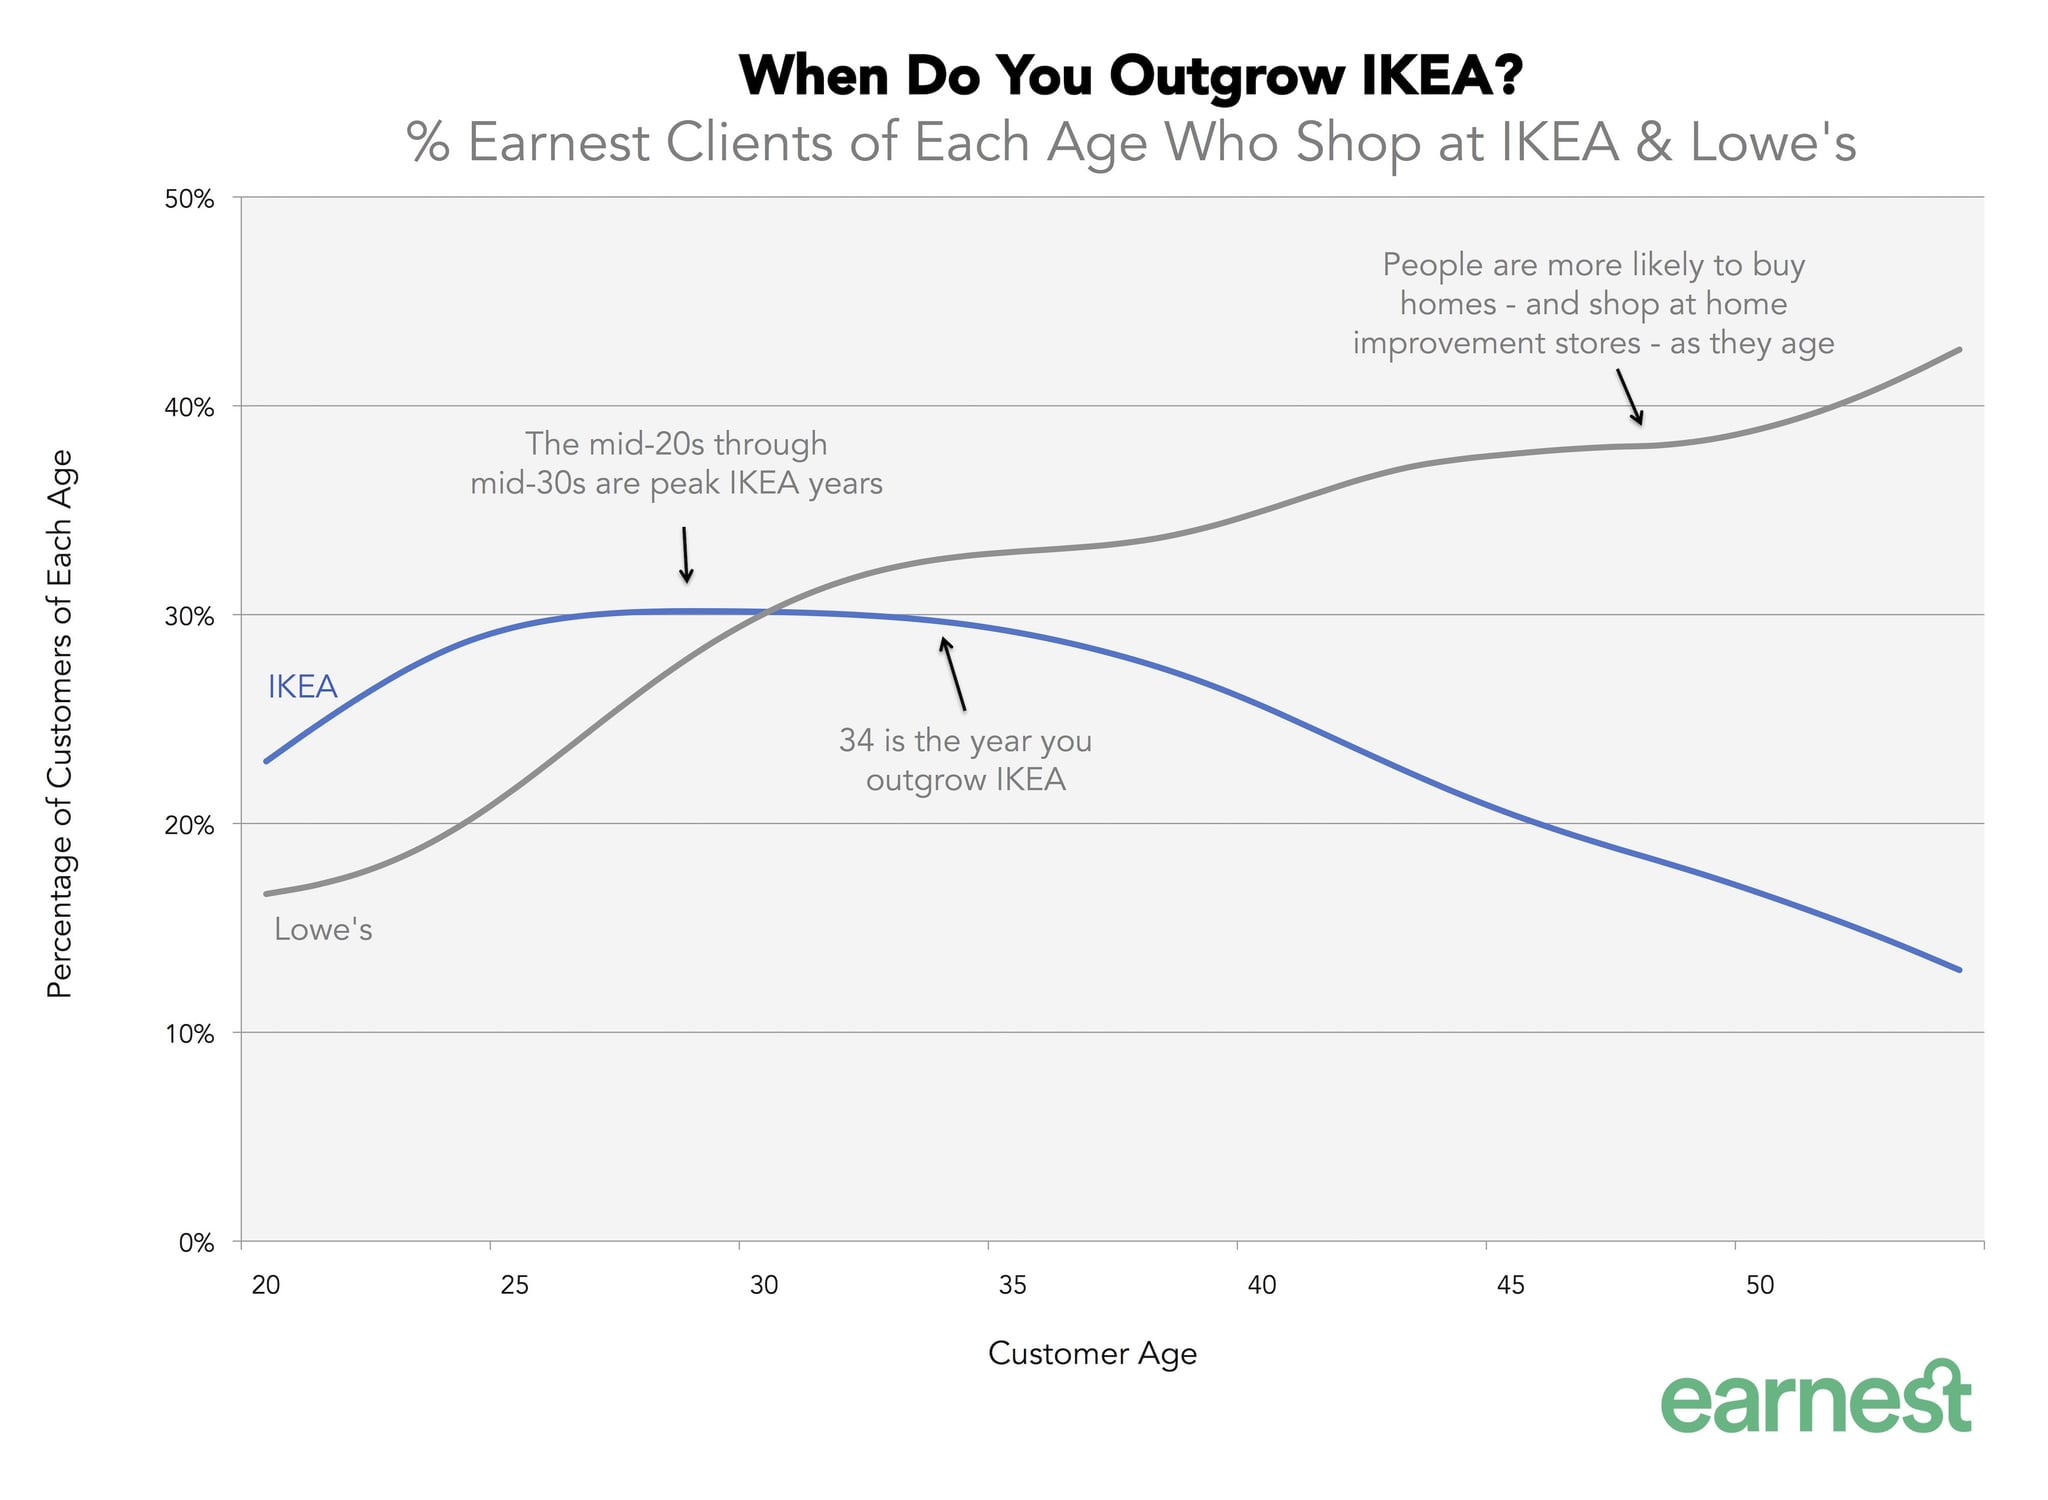 When are you too old to shop at ikea popsugar home australia share this link pooptronica Images